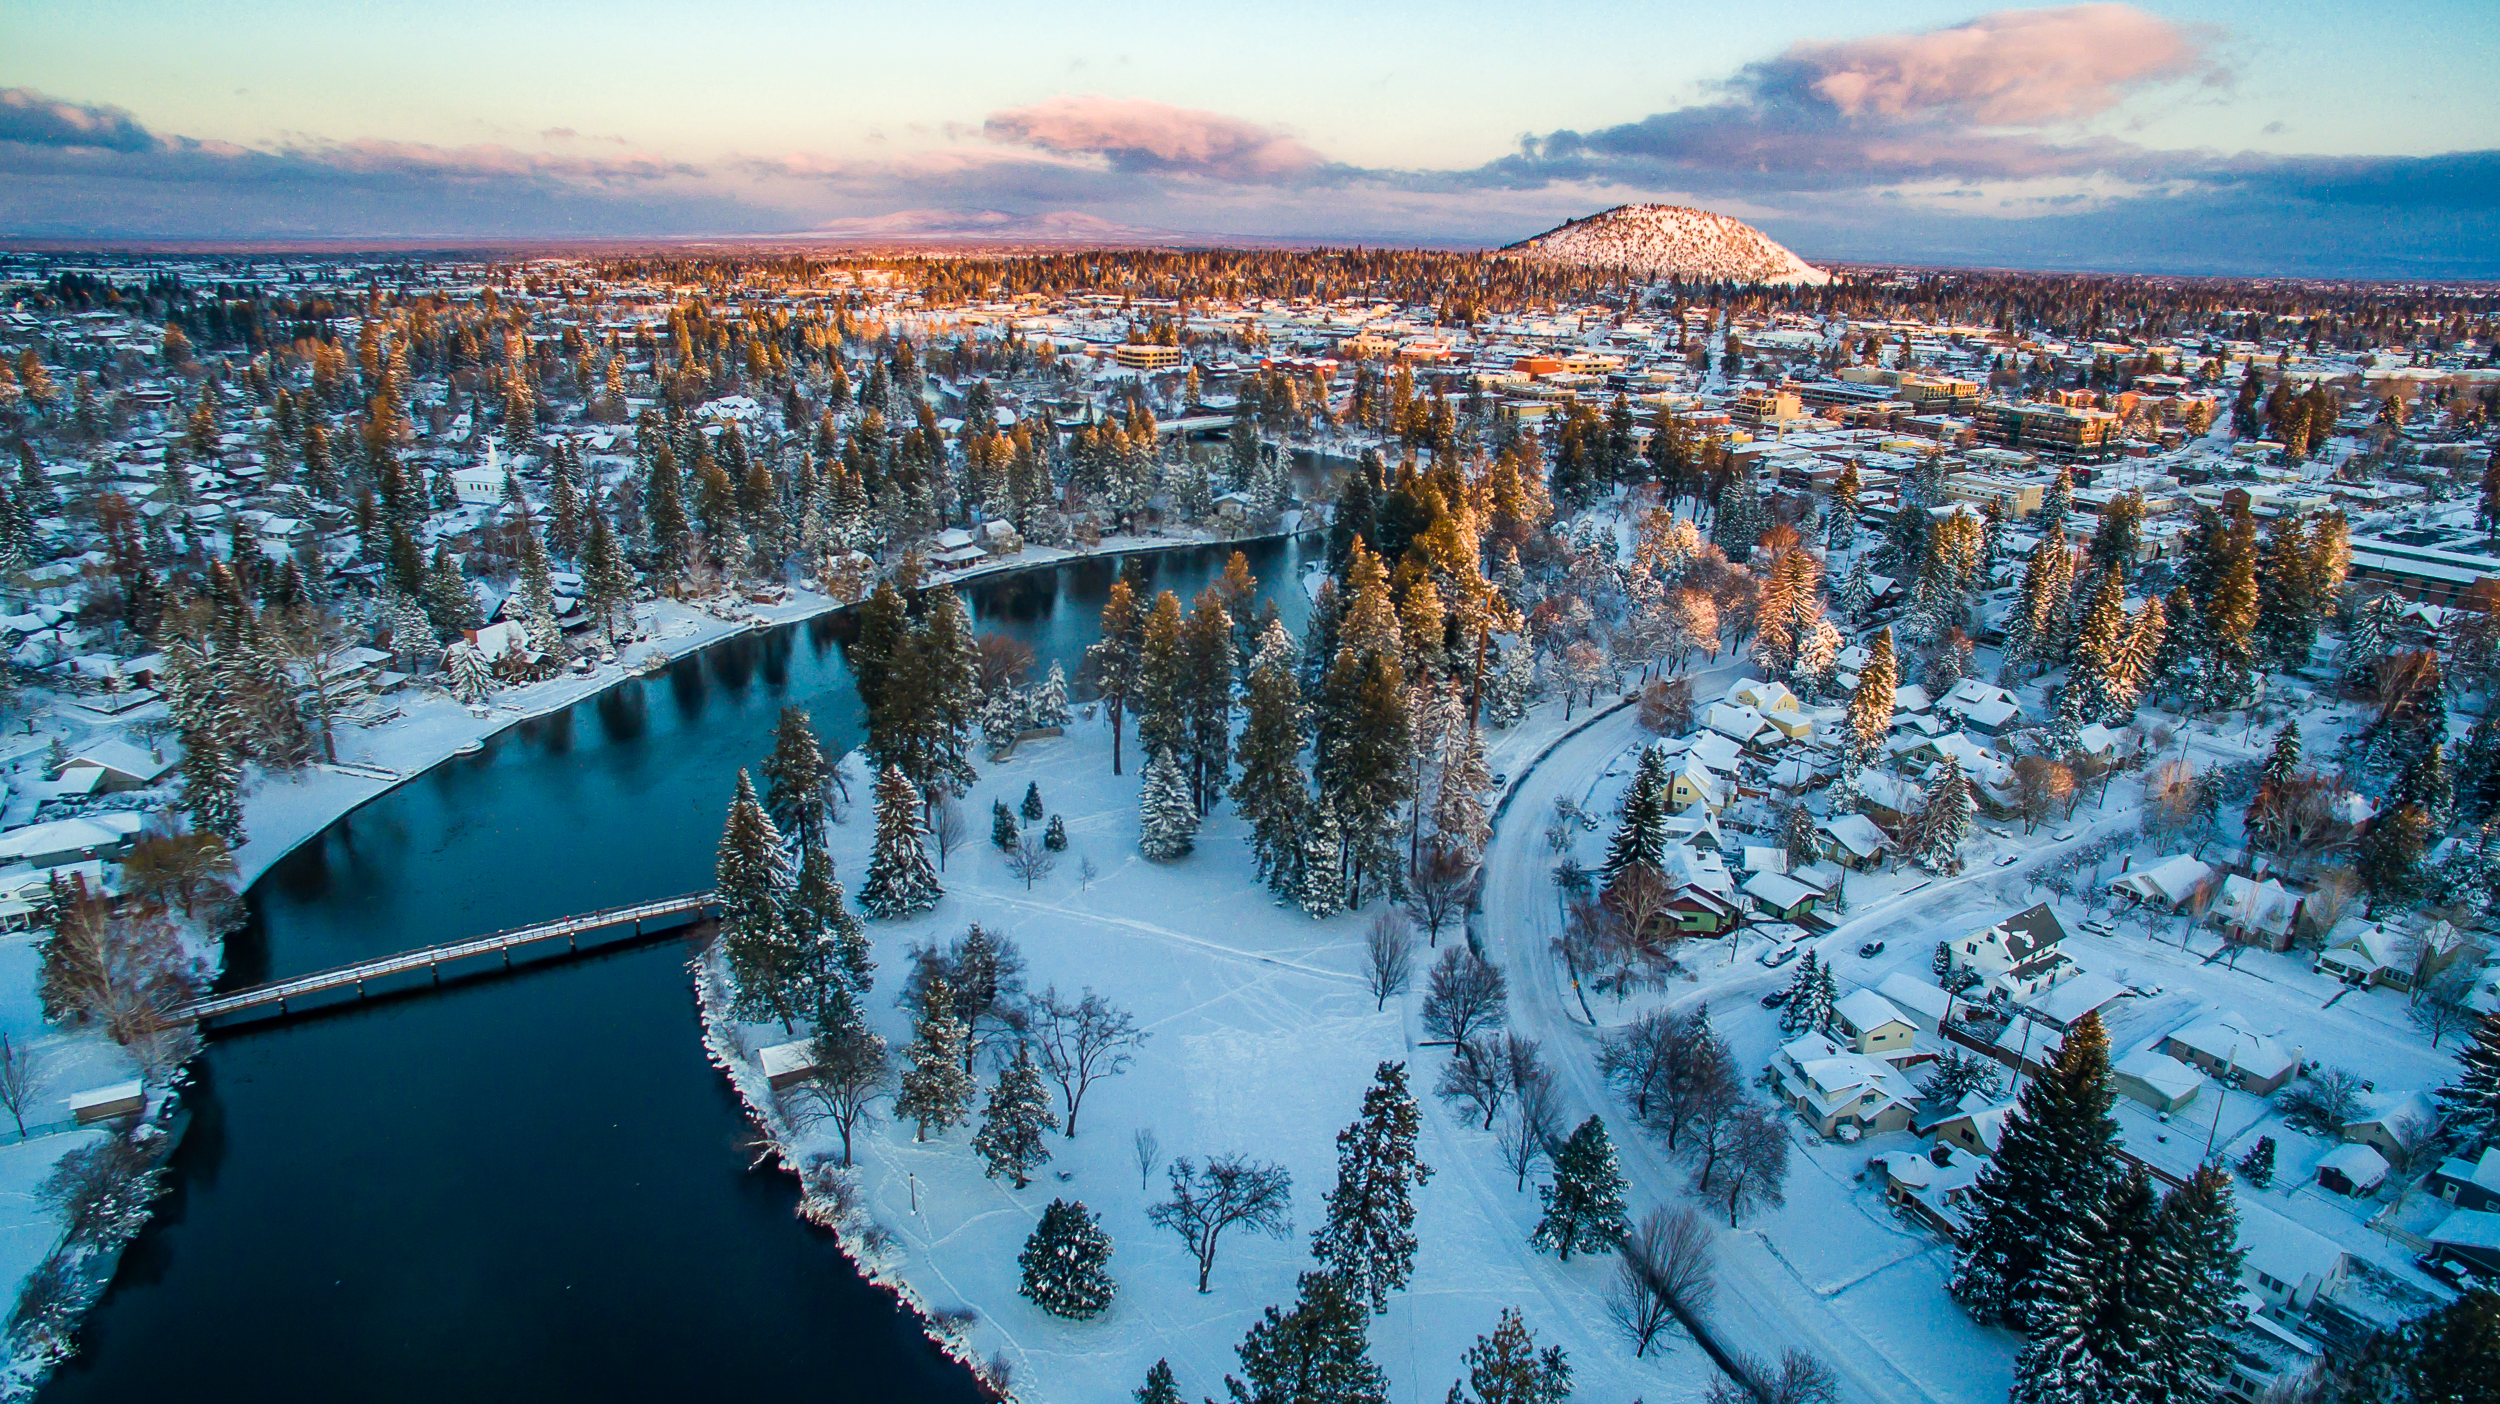 Bend, OR in winter.